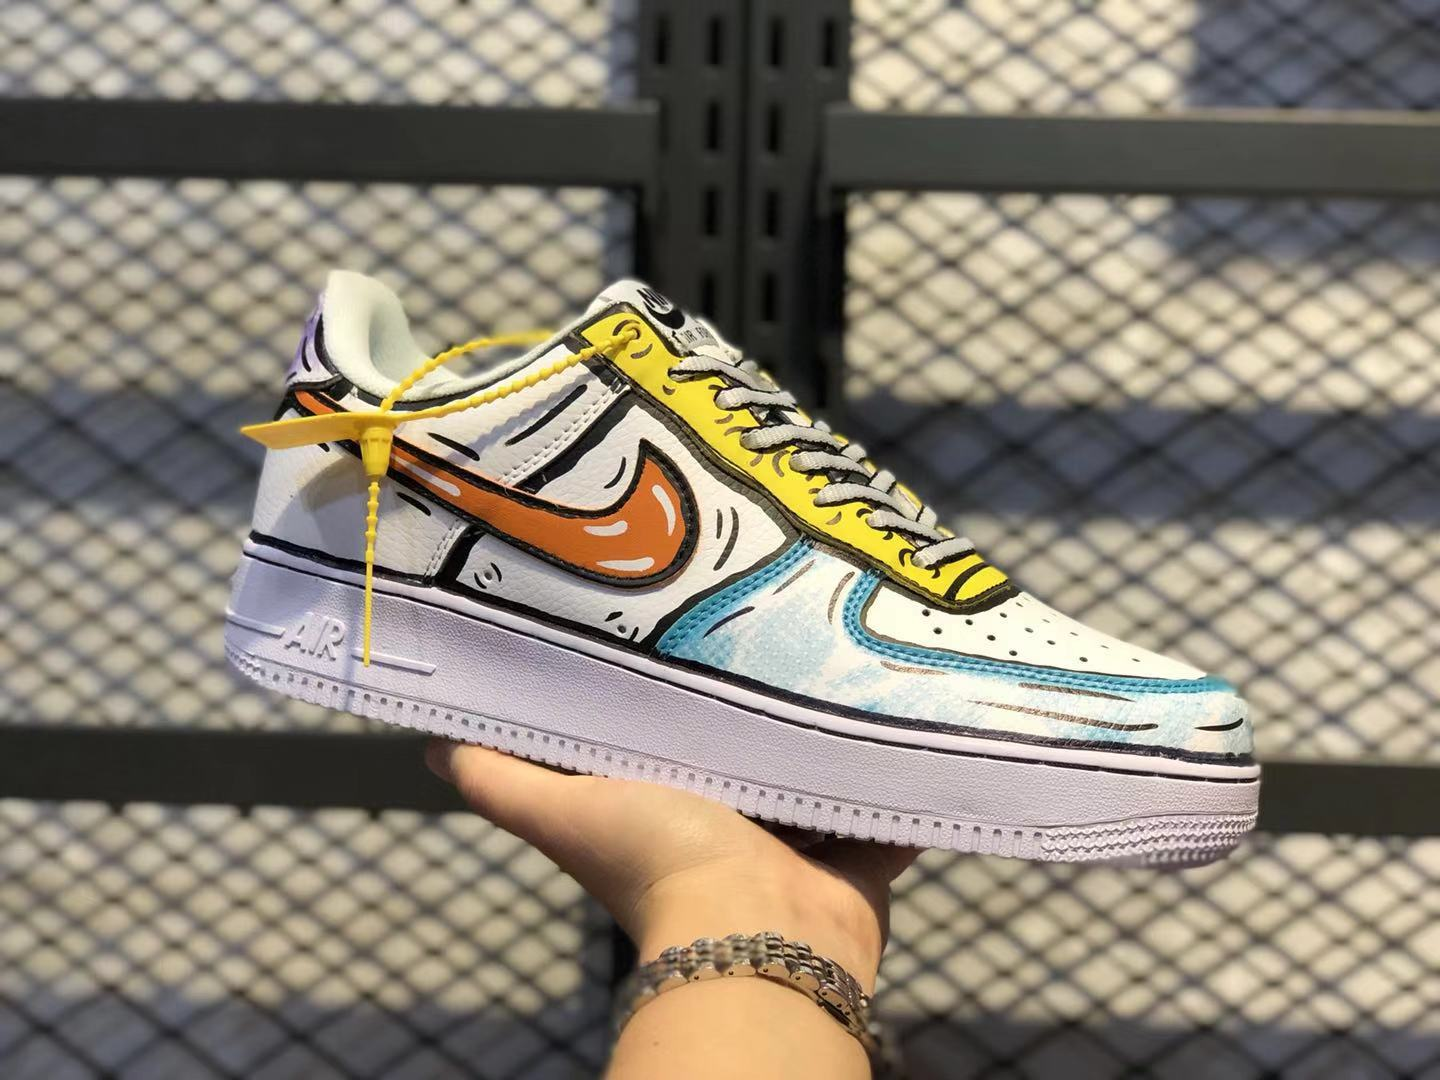 """Nike Air Force 1 Low """"Graffiti"""" Hand-Painted Multi-Color Online Buy AO9822-001"""